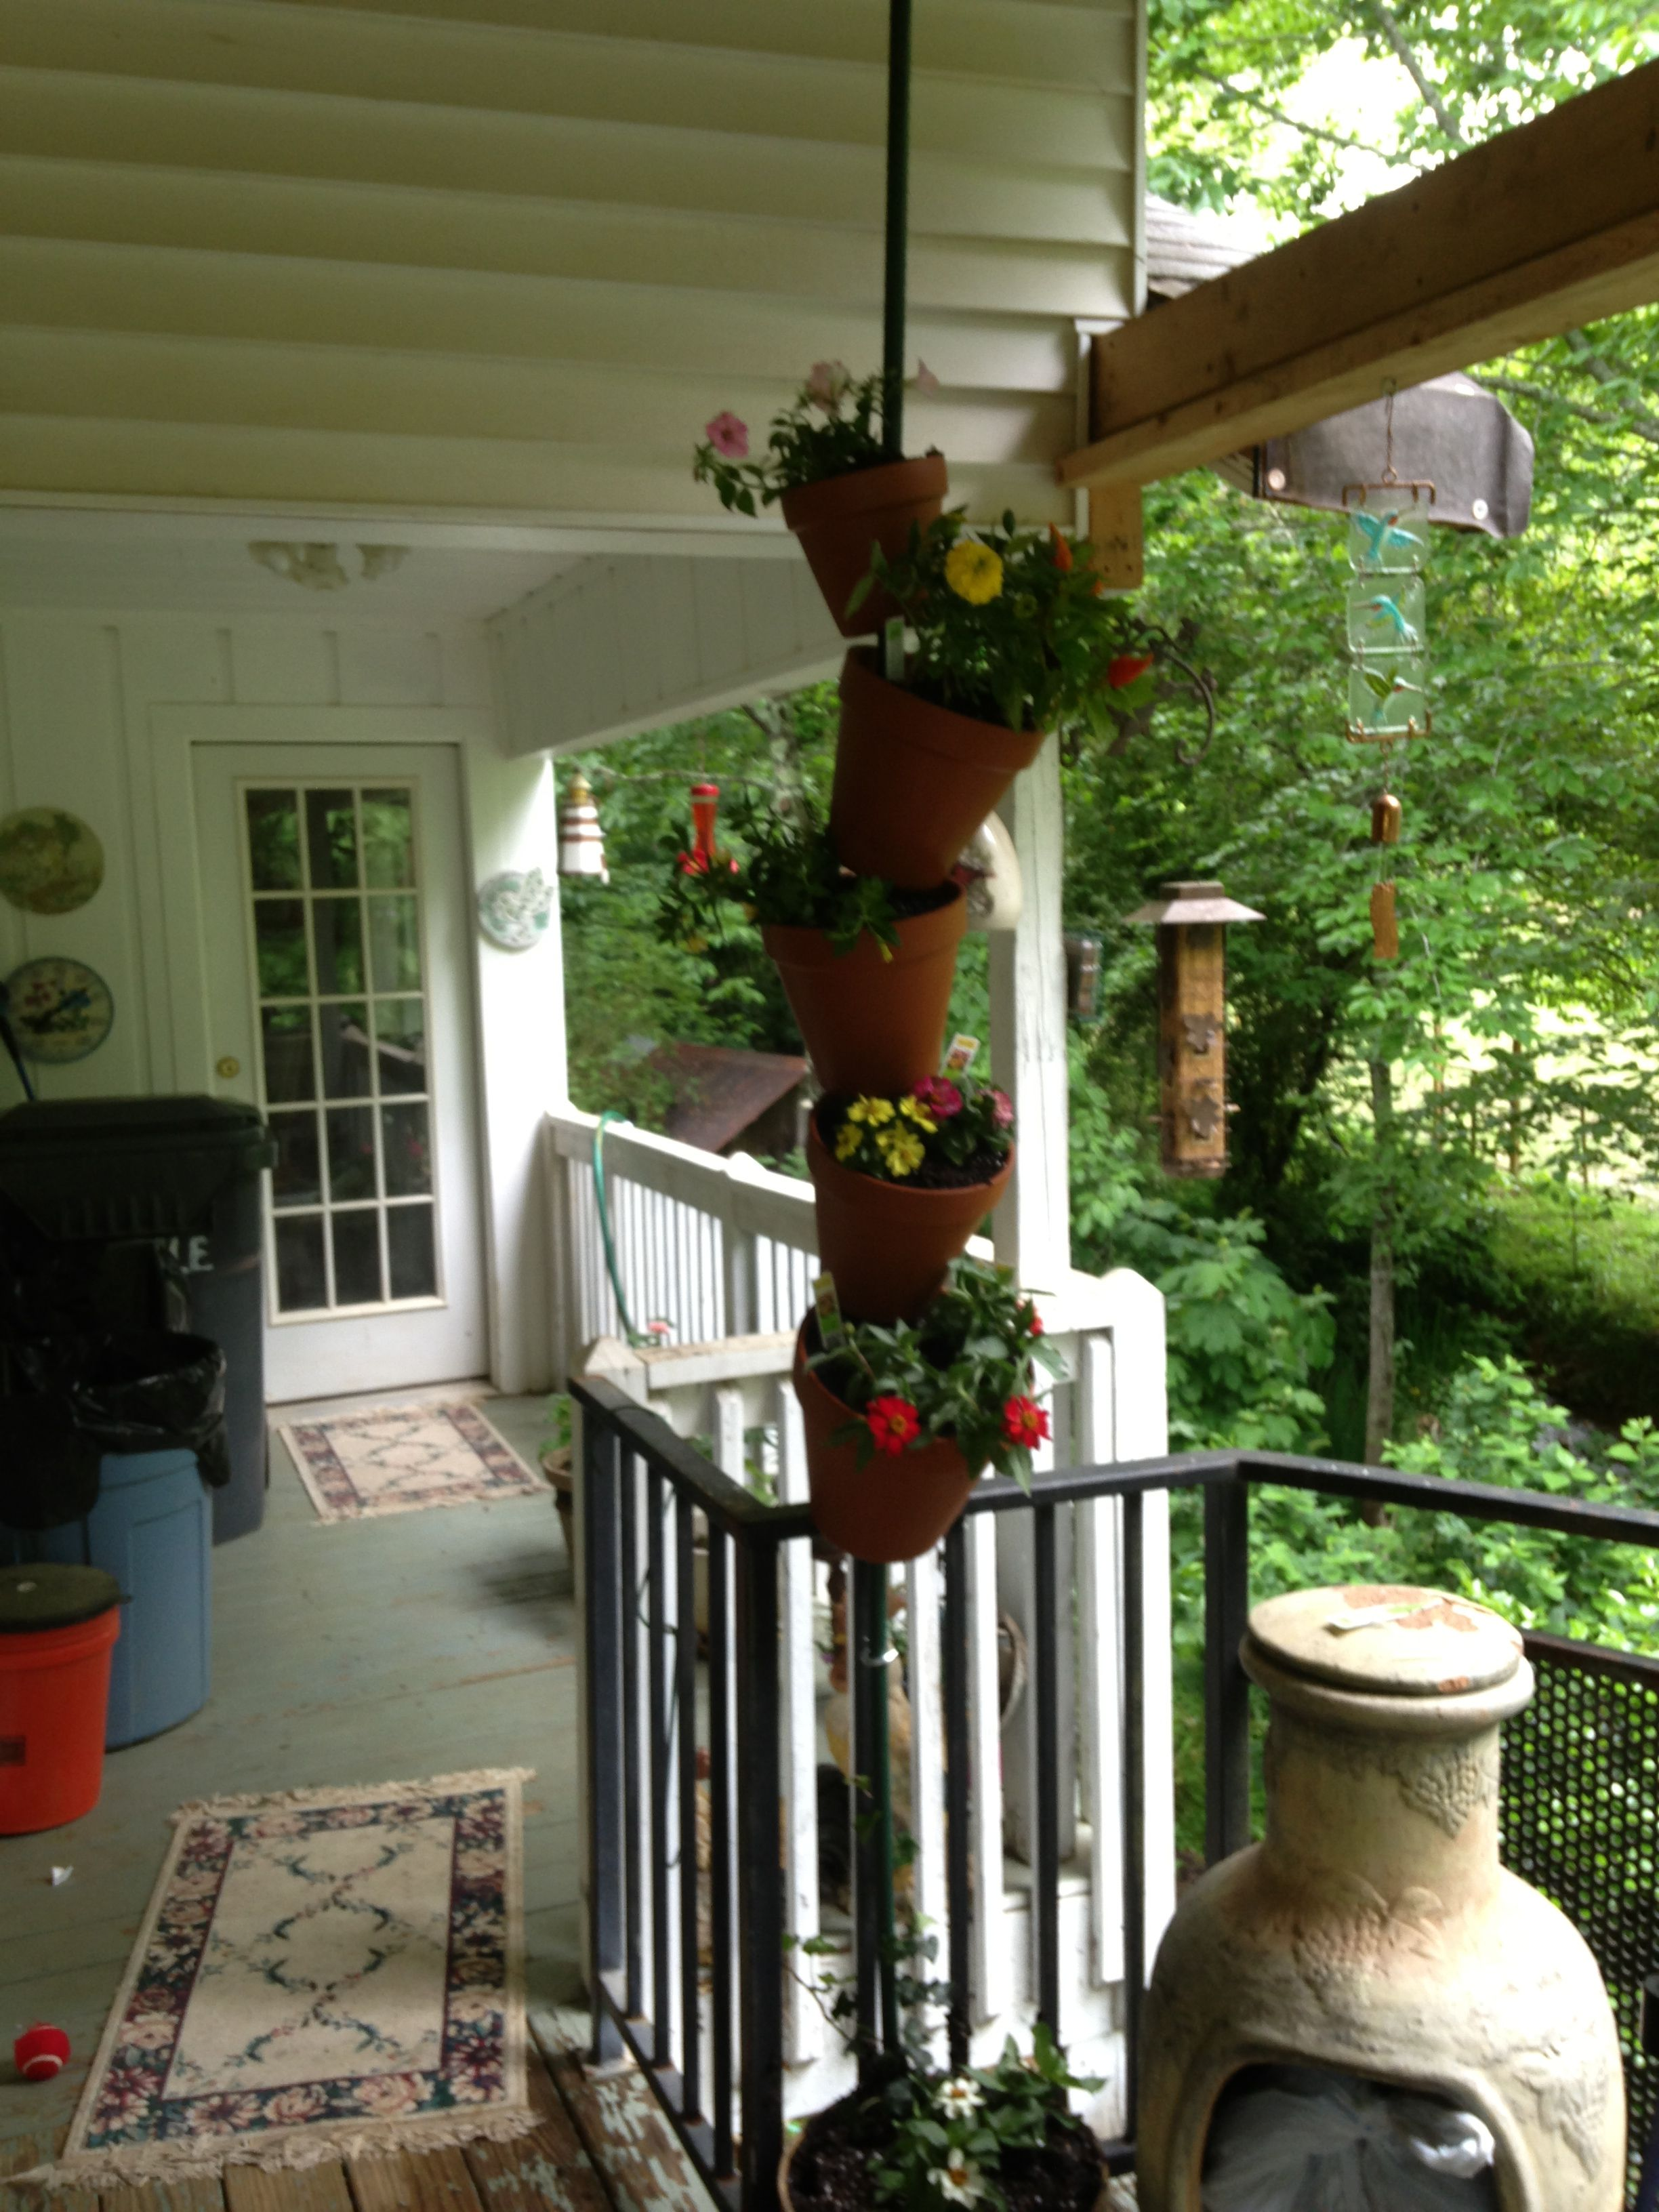 My version of stacked pots :)